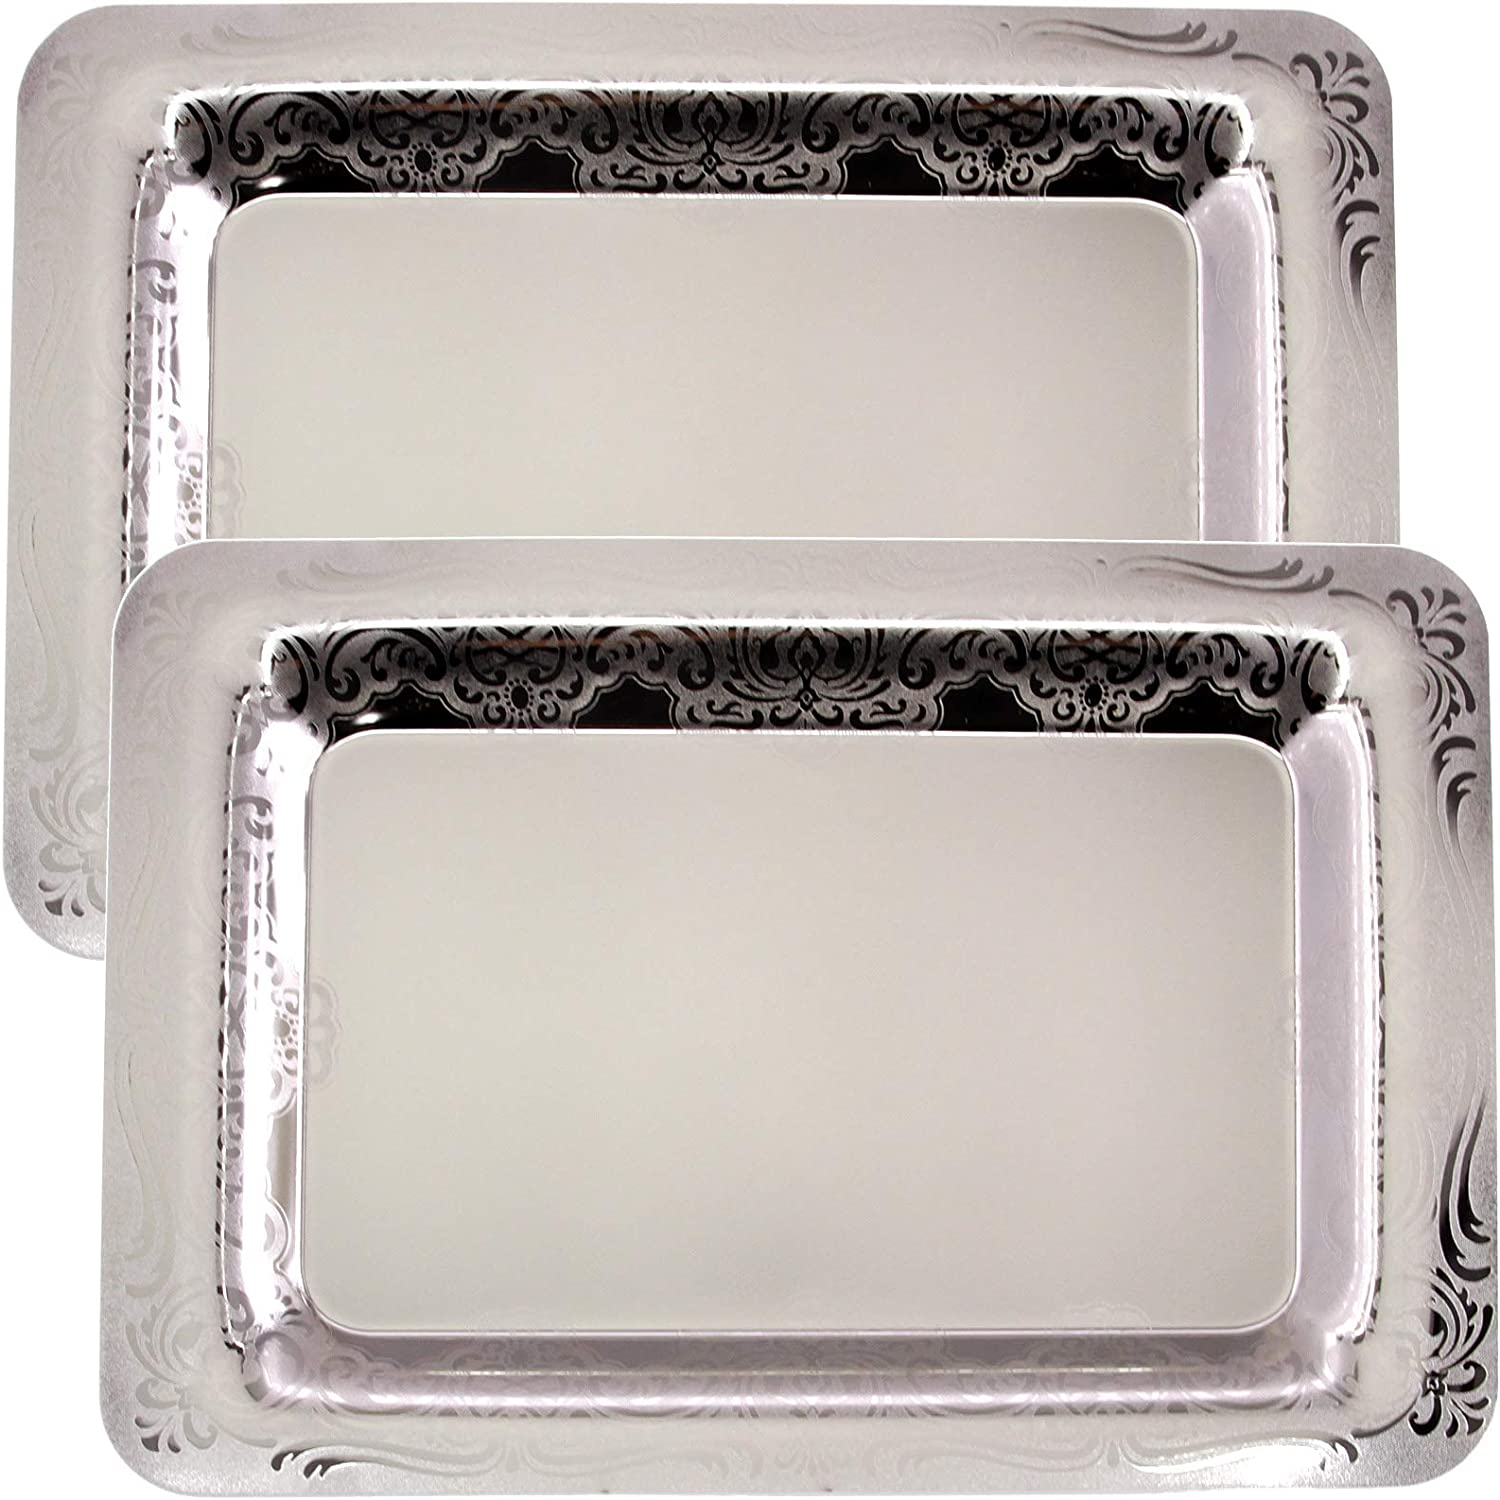 Maro Megastore (Pack of 2) 18.6 inch x 13 inch Oblong Chrome Plated Mirror Silver Serving Tray Stylish Design Floral Engraved Edge Decorative Party Birthday Wedding Buffet Wine Platter Plate TLA-347